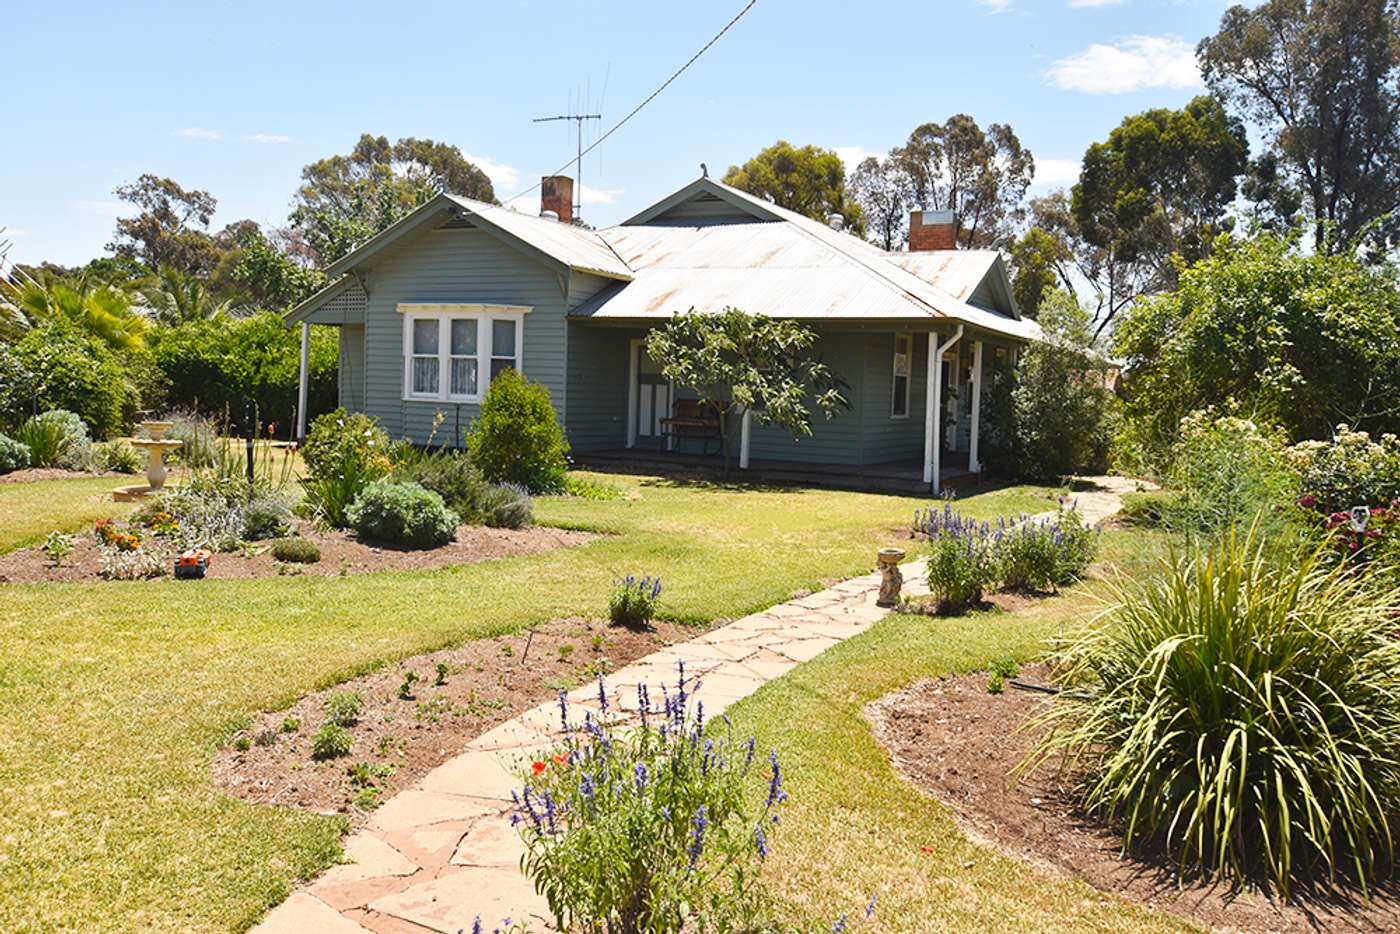 Main view of Homely house listing, 7 Ryrie Street, Stanhope VIC 3623